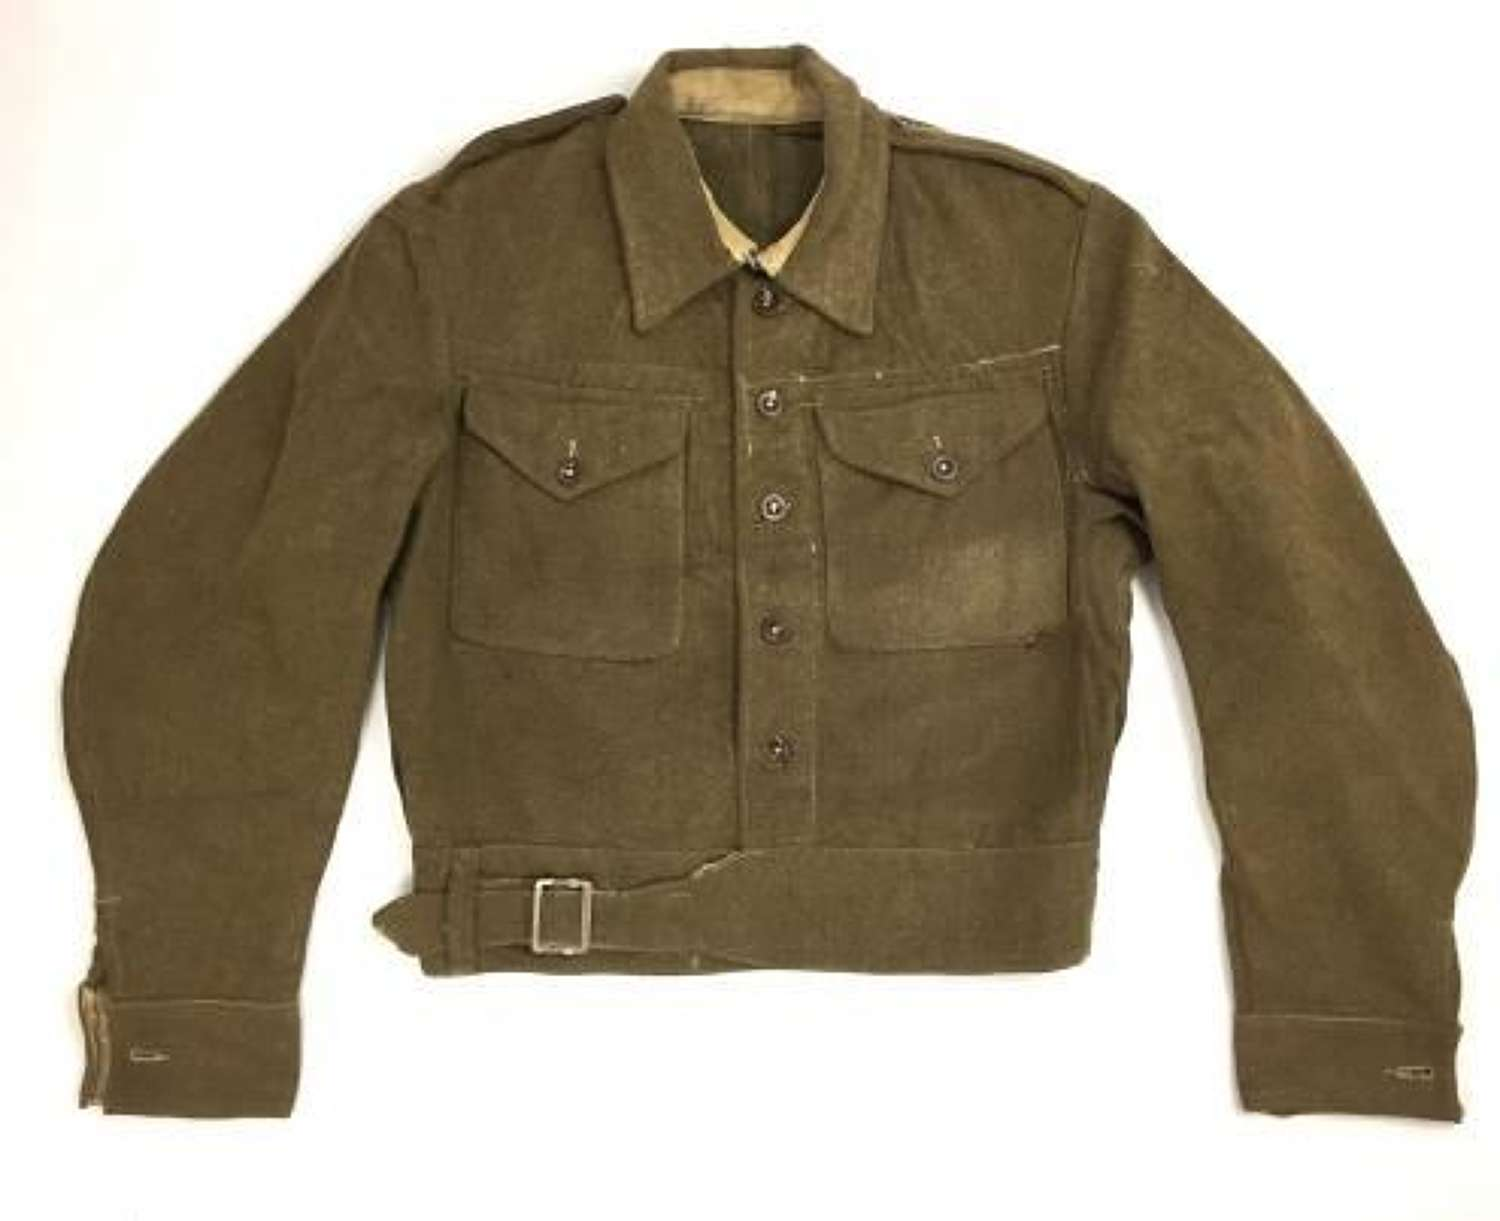 Original 1945 Dated British Army 1940 Pattern (Austerity) Battledress